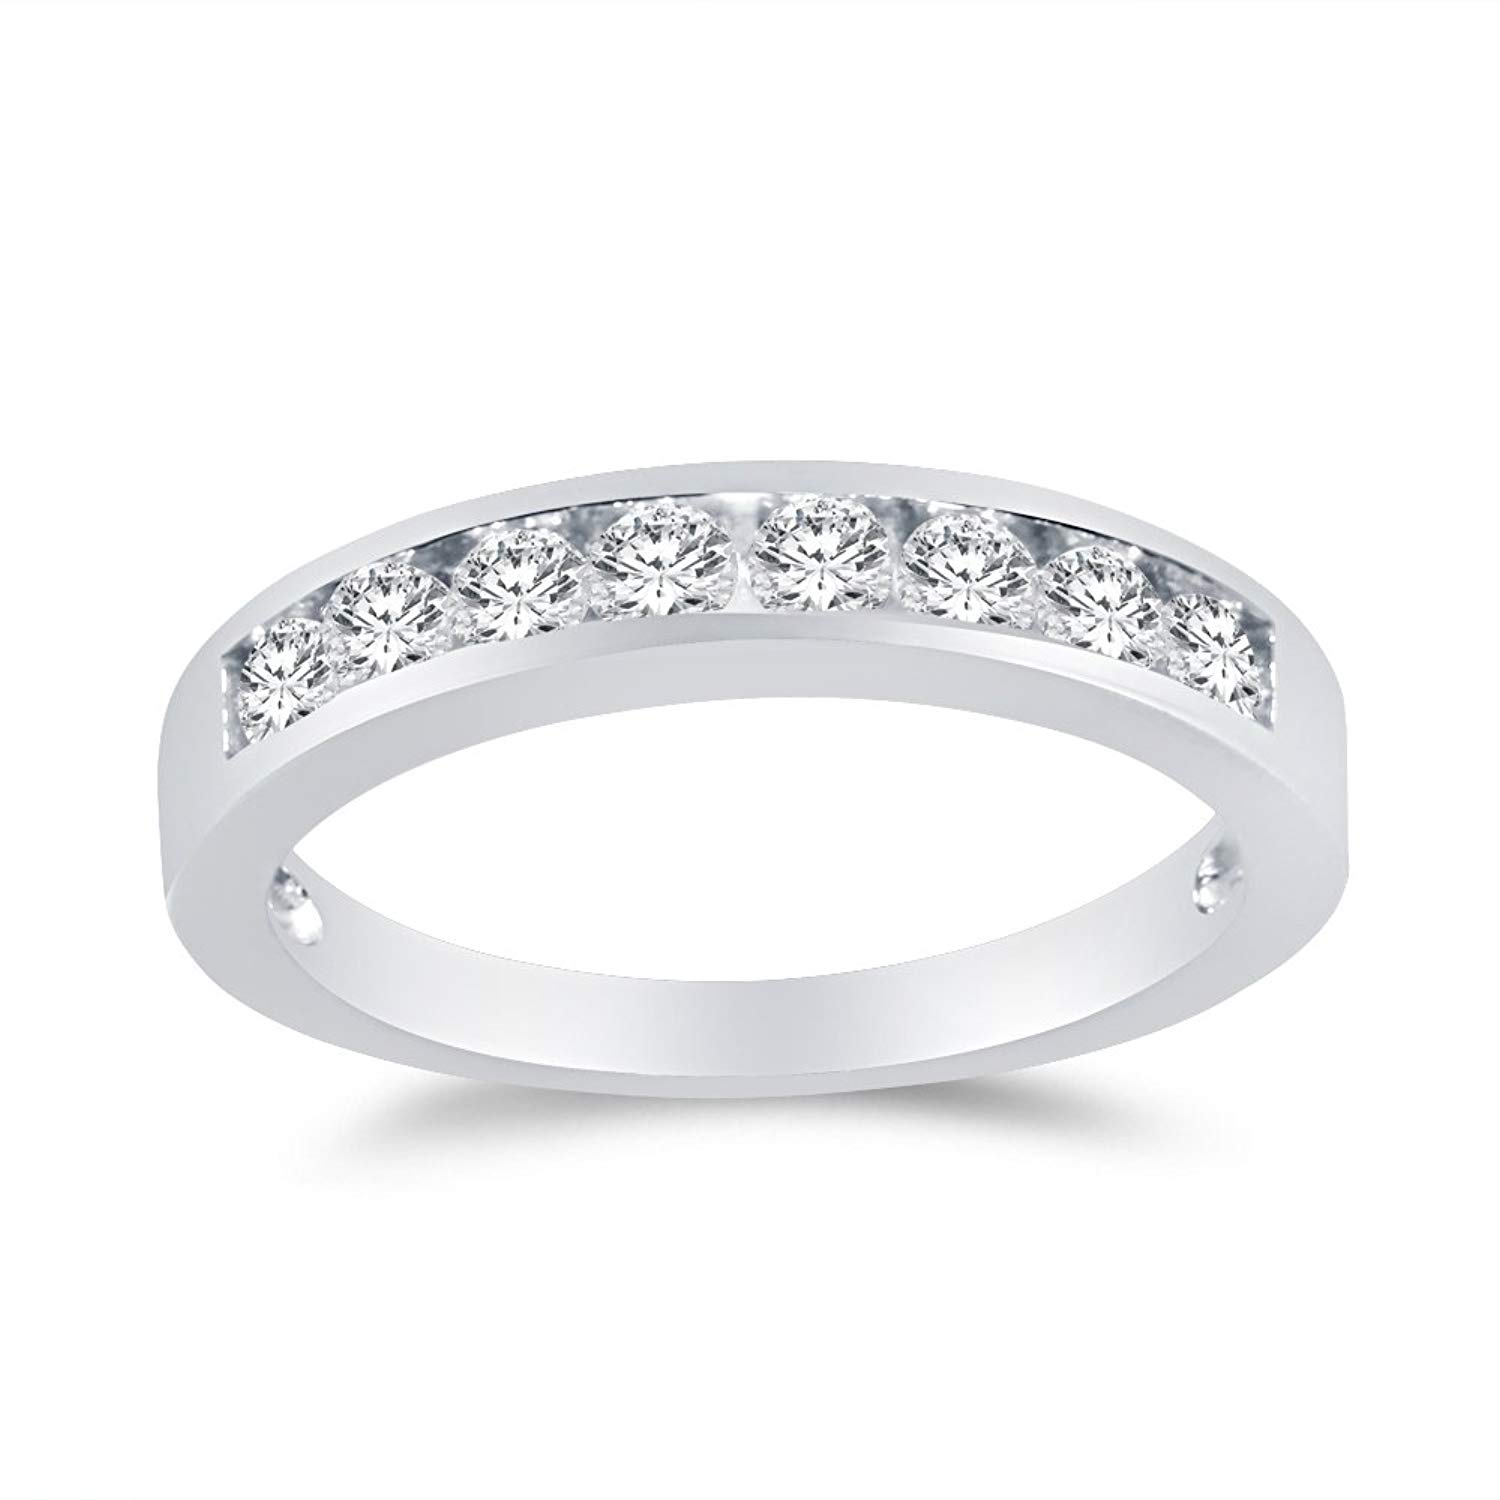 Jewel Tie 925 Sterling Silver 3.5mm Round Cut Wedding Ring Anniversary Band Cubic Zirconia CZ 1.0cttw.